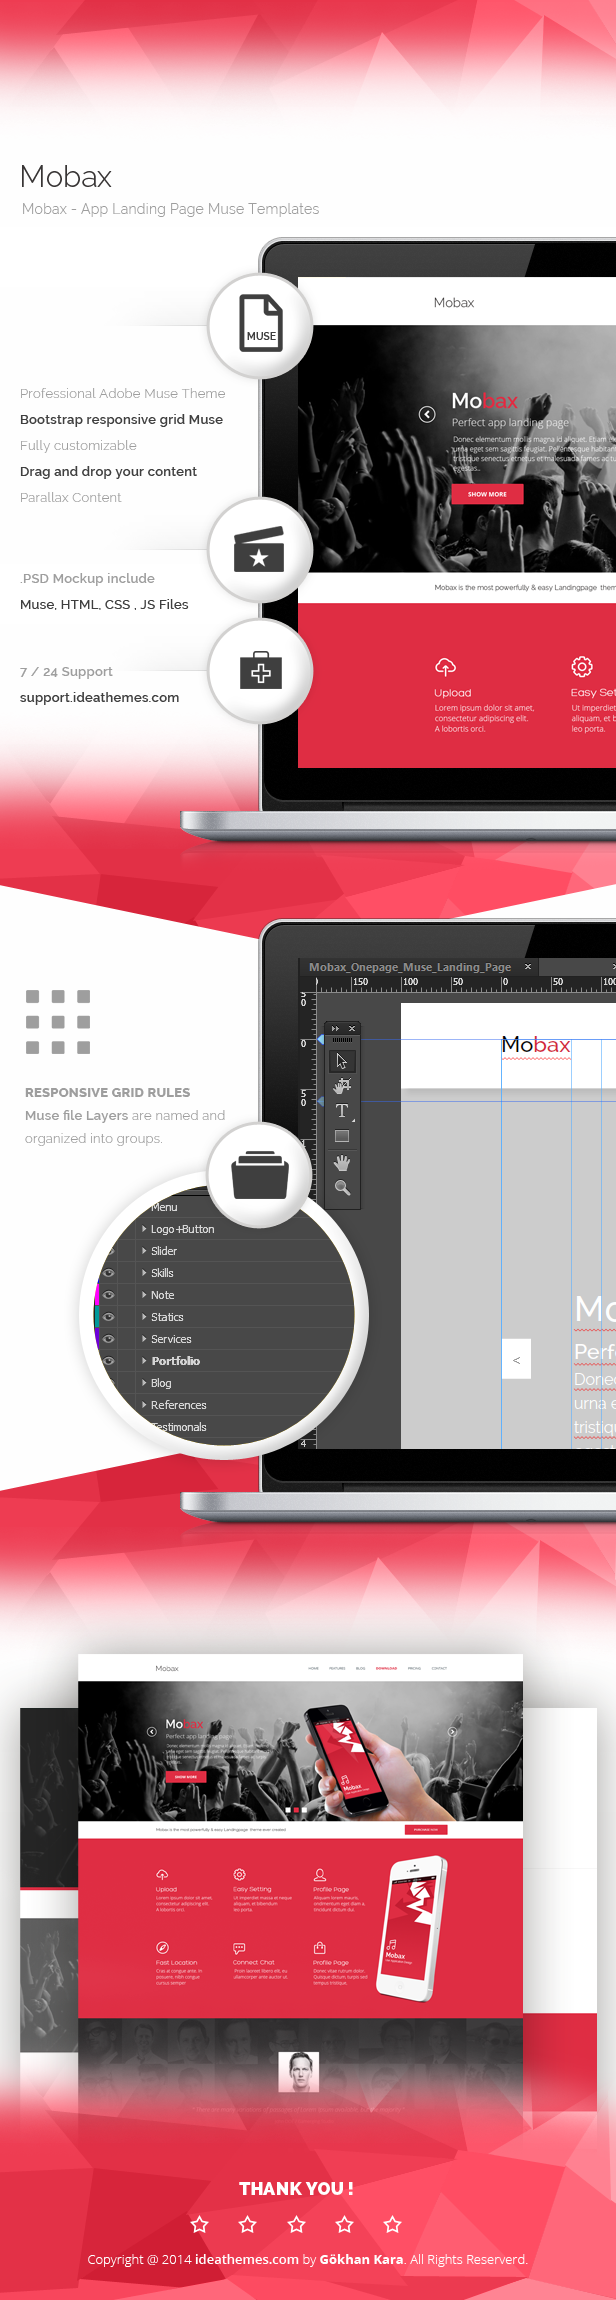 Mobax - App Landing Page Muse Templates